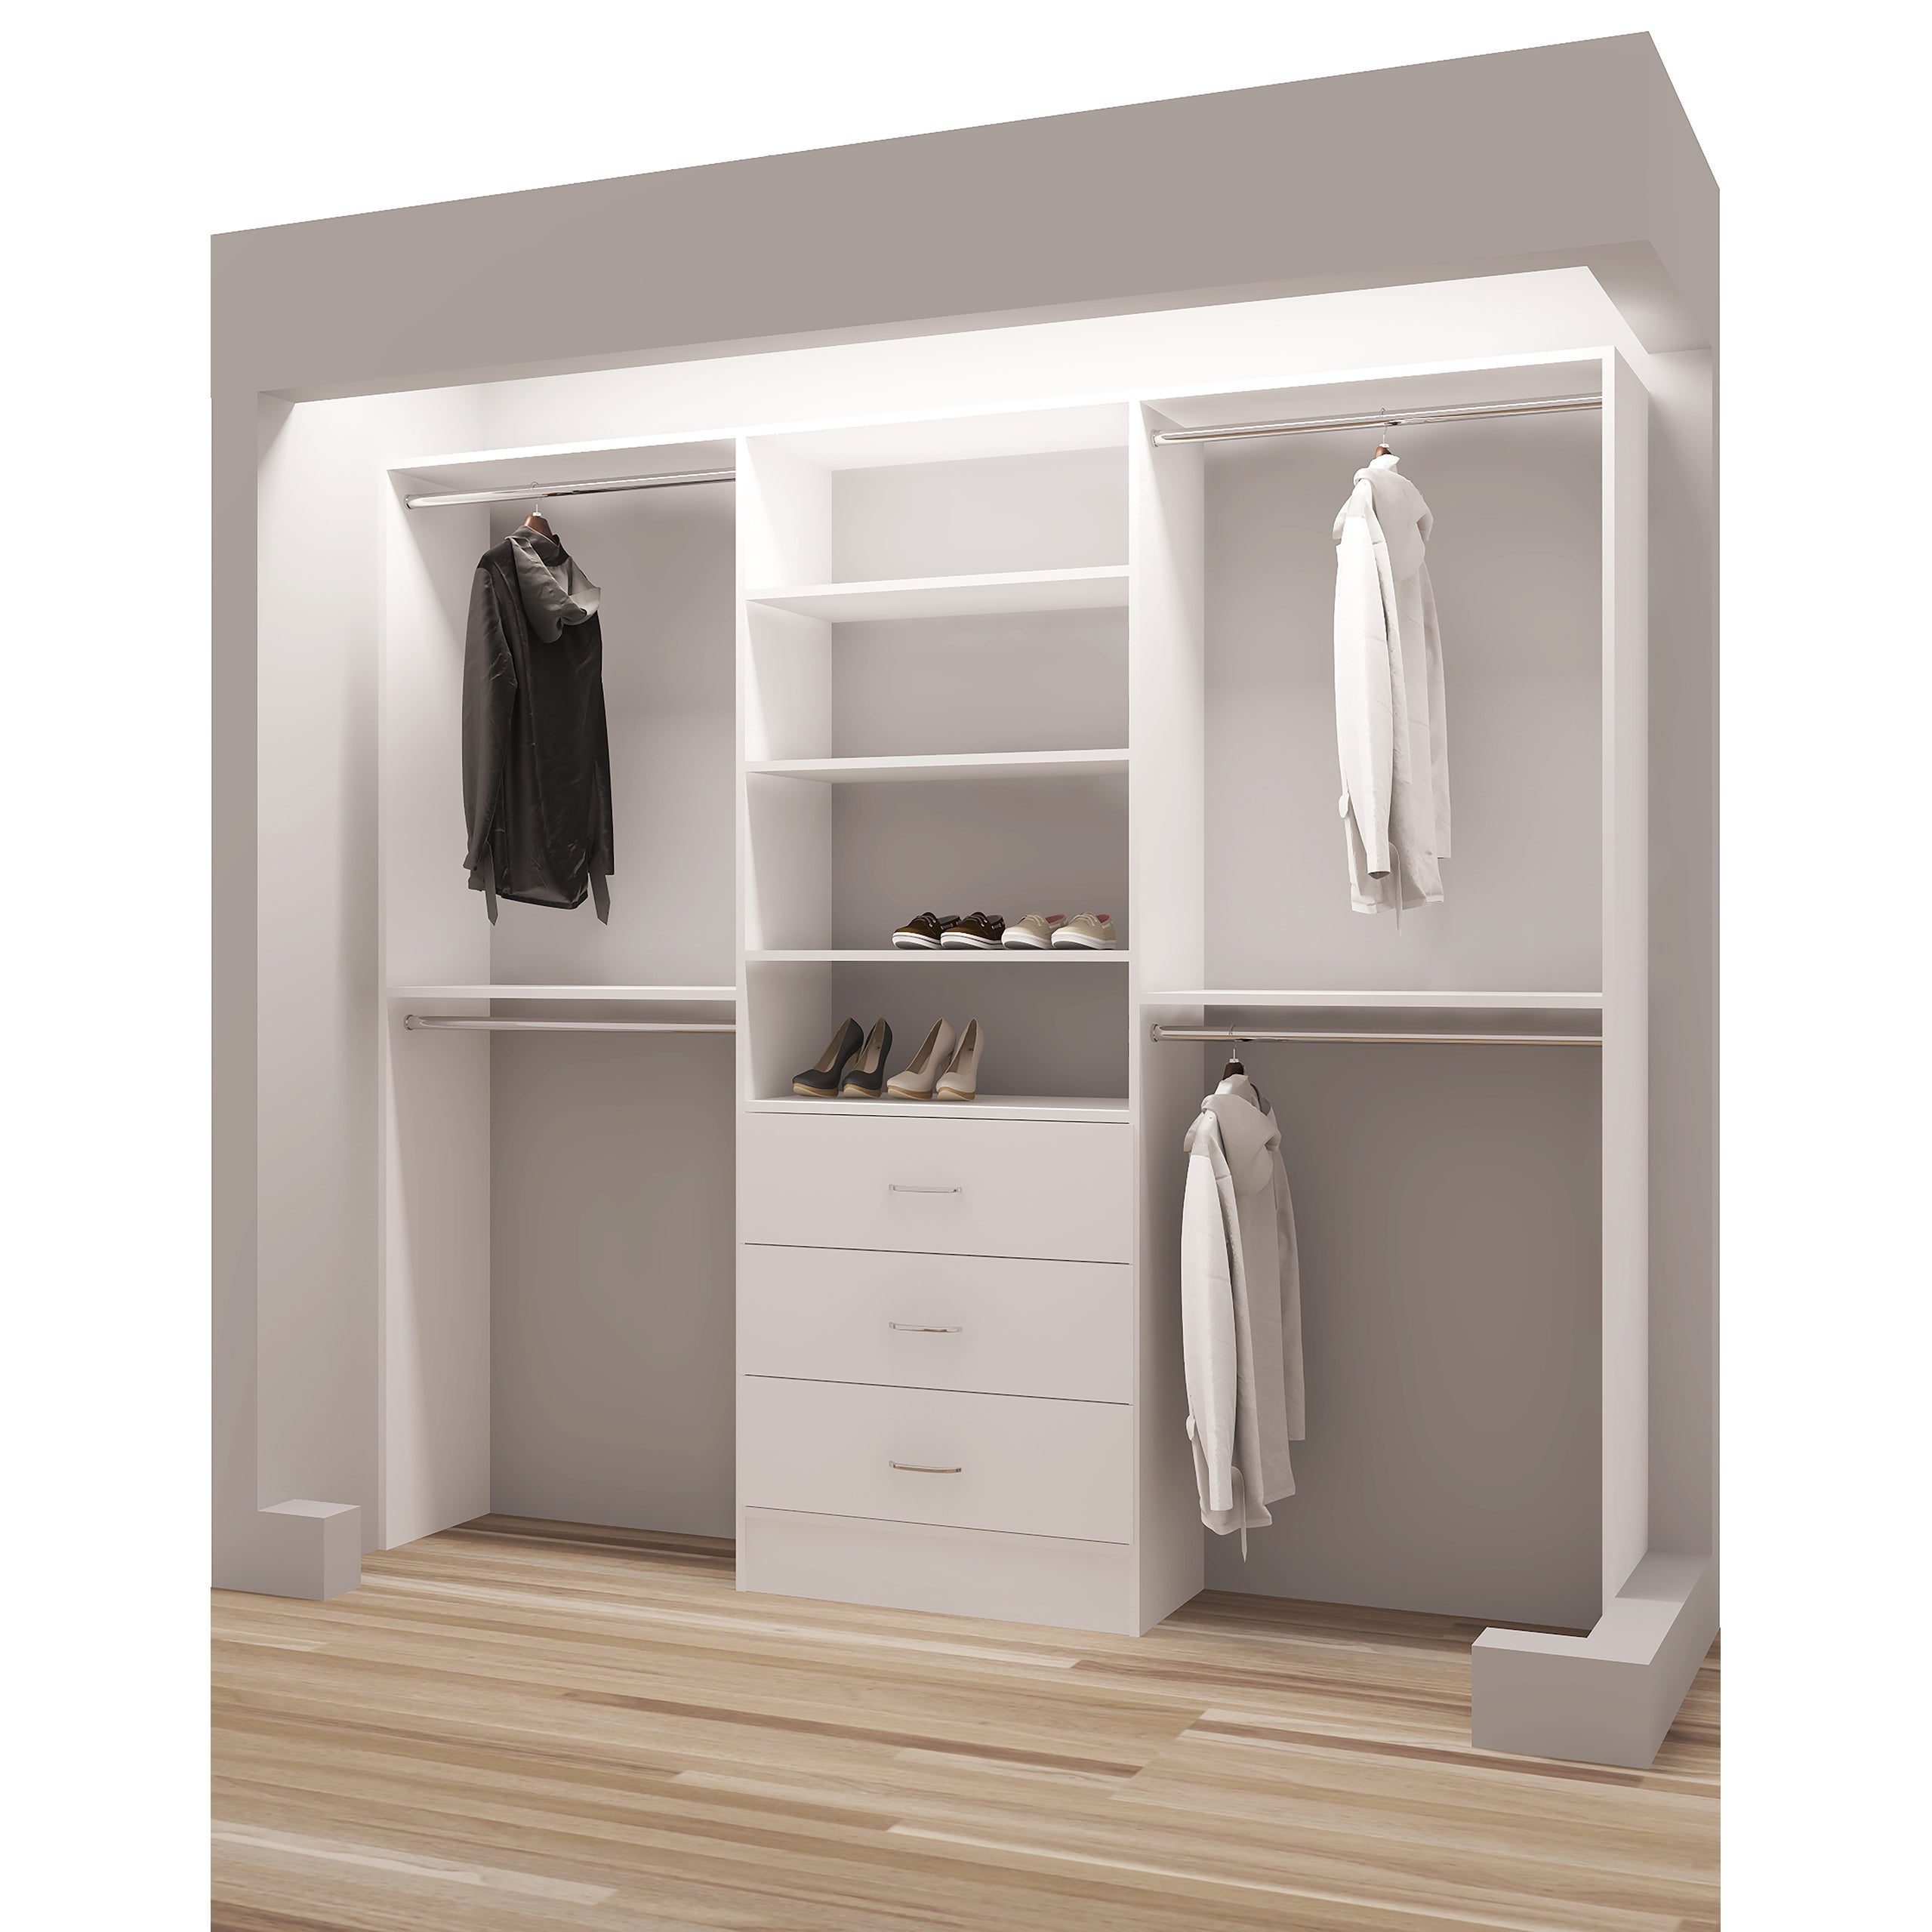 drawers storage conference extend standard display hafele come engage close soft shelves cabinets on with tag system products pasadena by fully the expo closet so hardware you and closets in